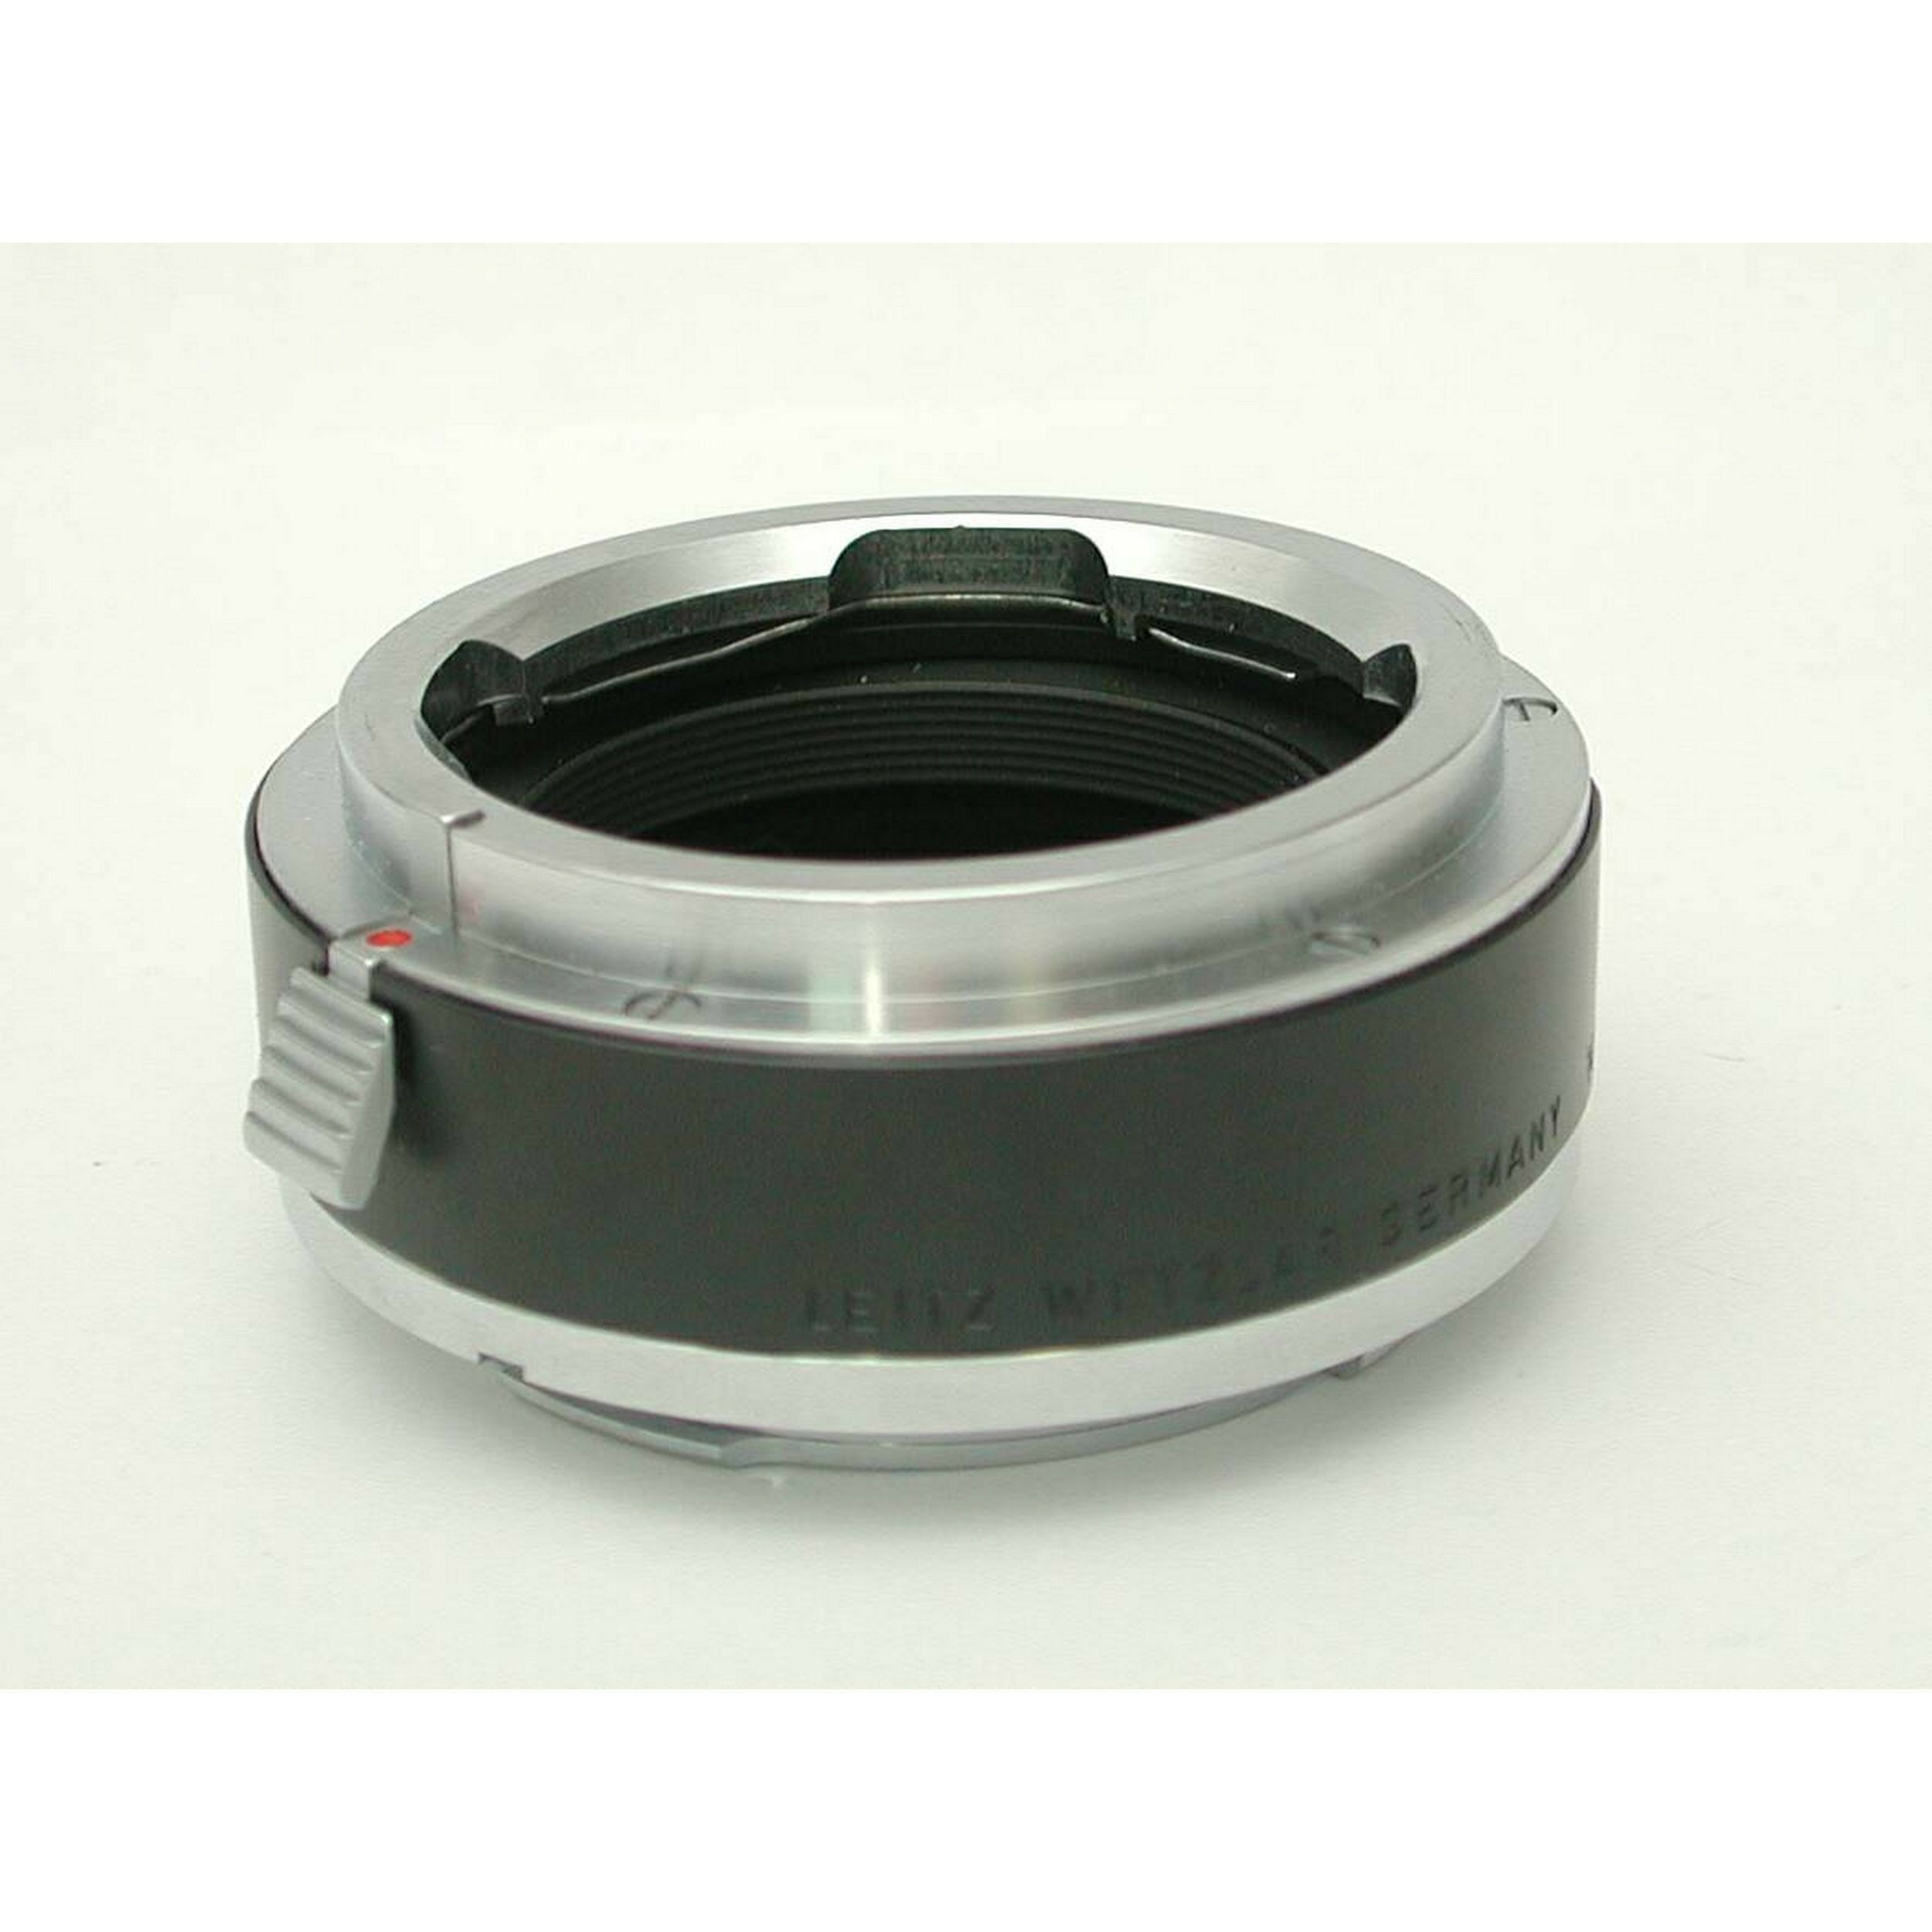 Leica 14167 Adapter